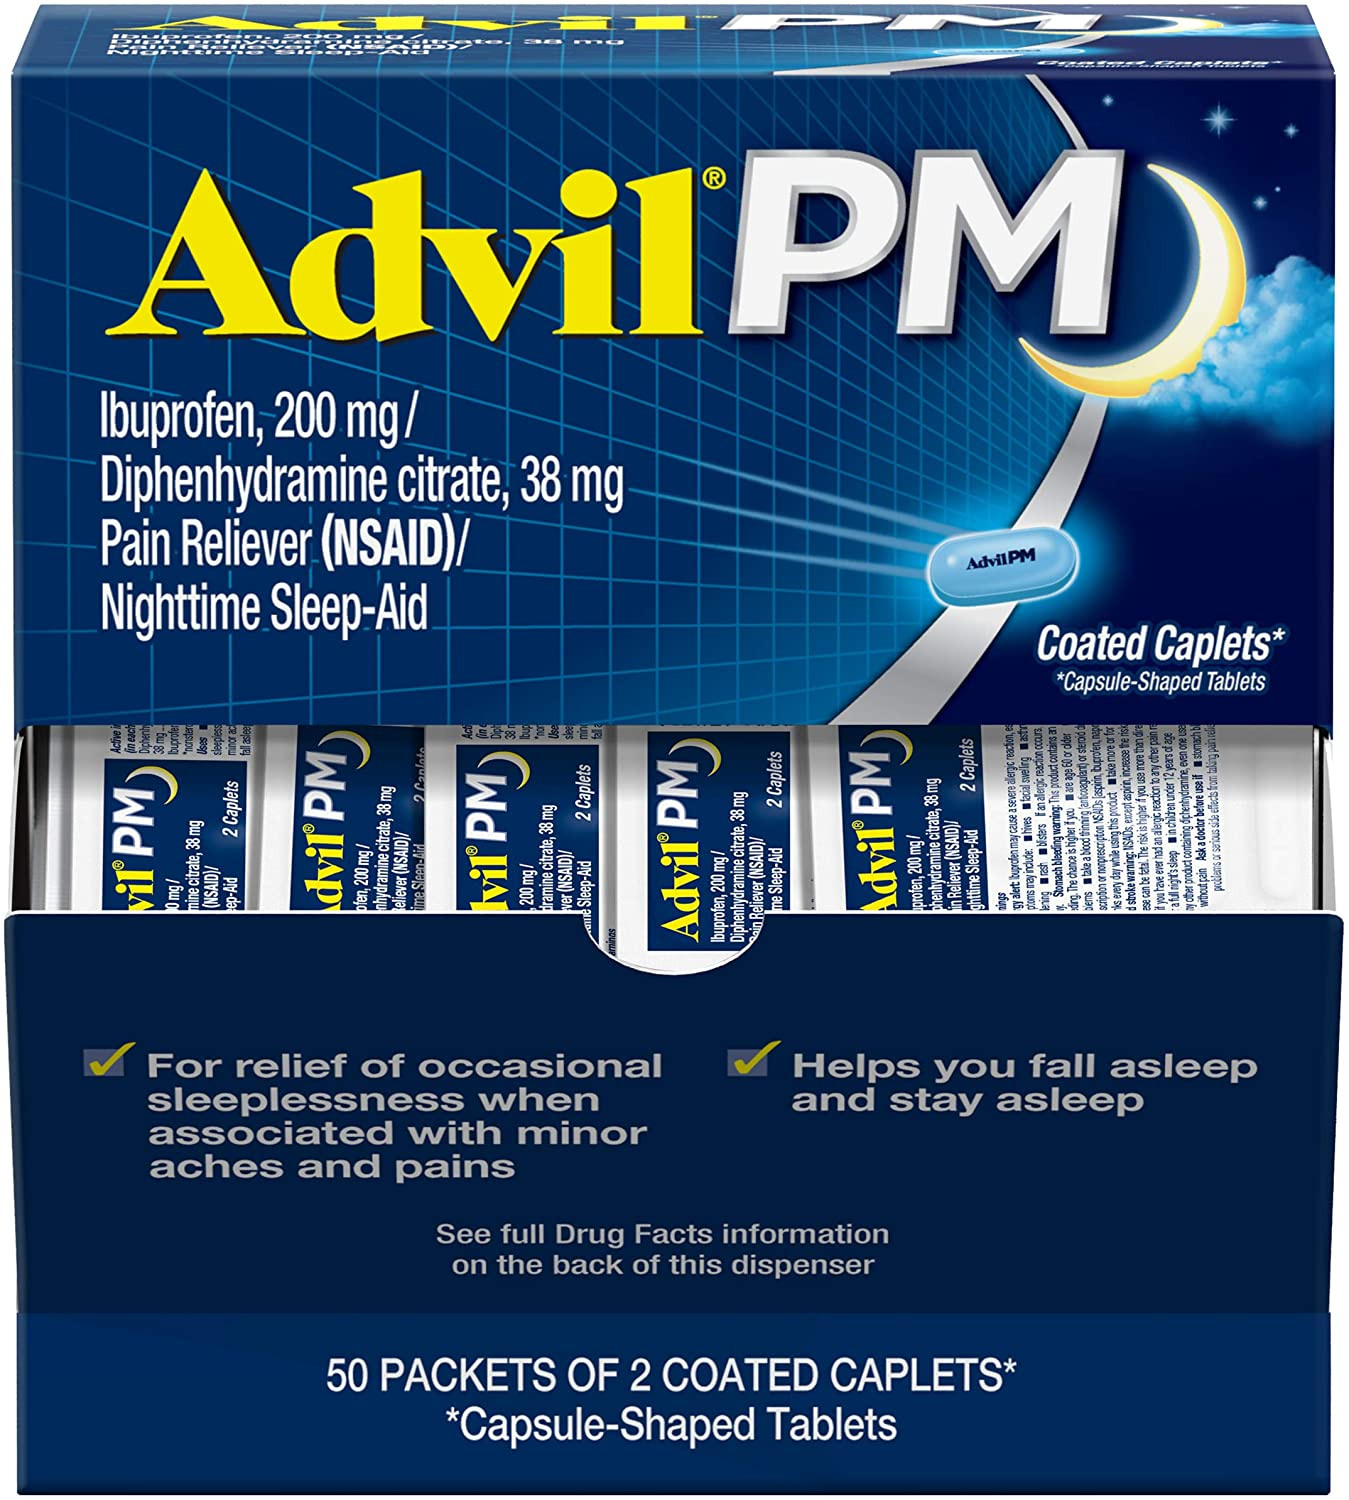 Amazon Com Advil Pm Pain Reliever And Nighttime Sleep Aid Pain Medicine With Ibuprofen For Pain Relief And Diphenhydramine Citrate For A Sleep Aid 50x2 Coated Caplets Health Household